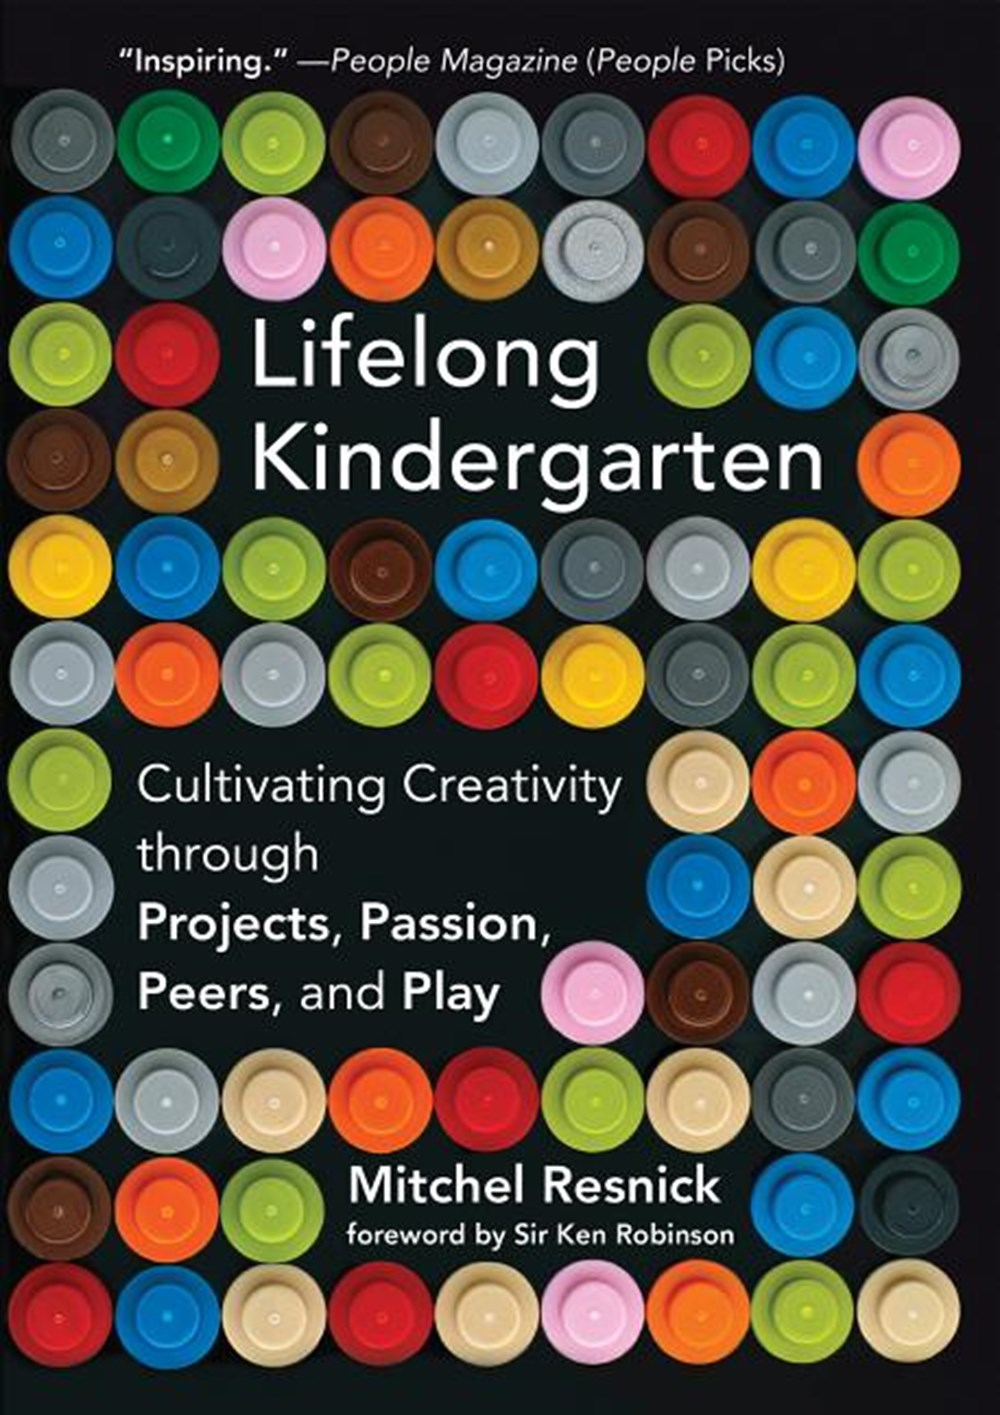 Lifelong Kindergarten Cultivating Creativity Through Projects, Passion, Peers, and Play